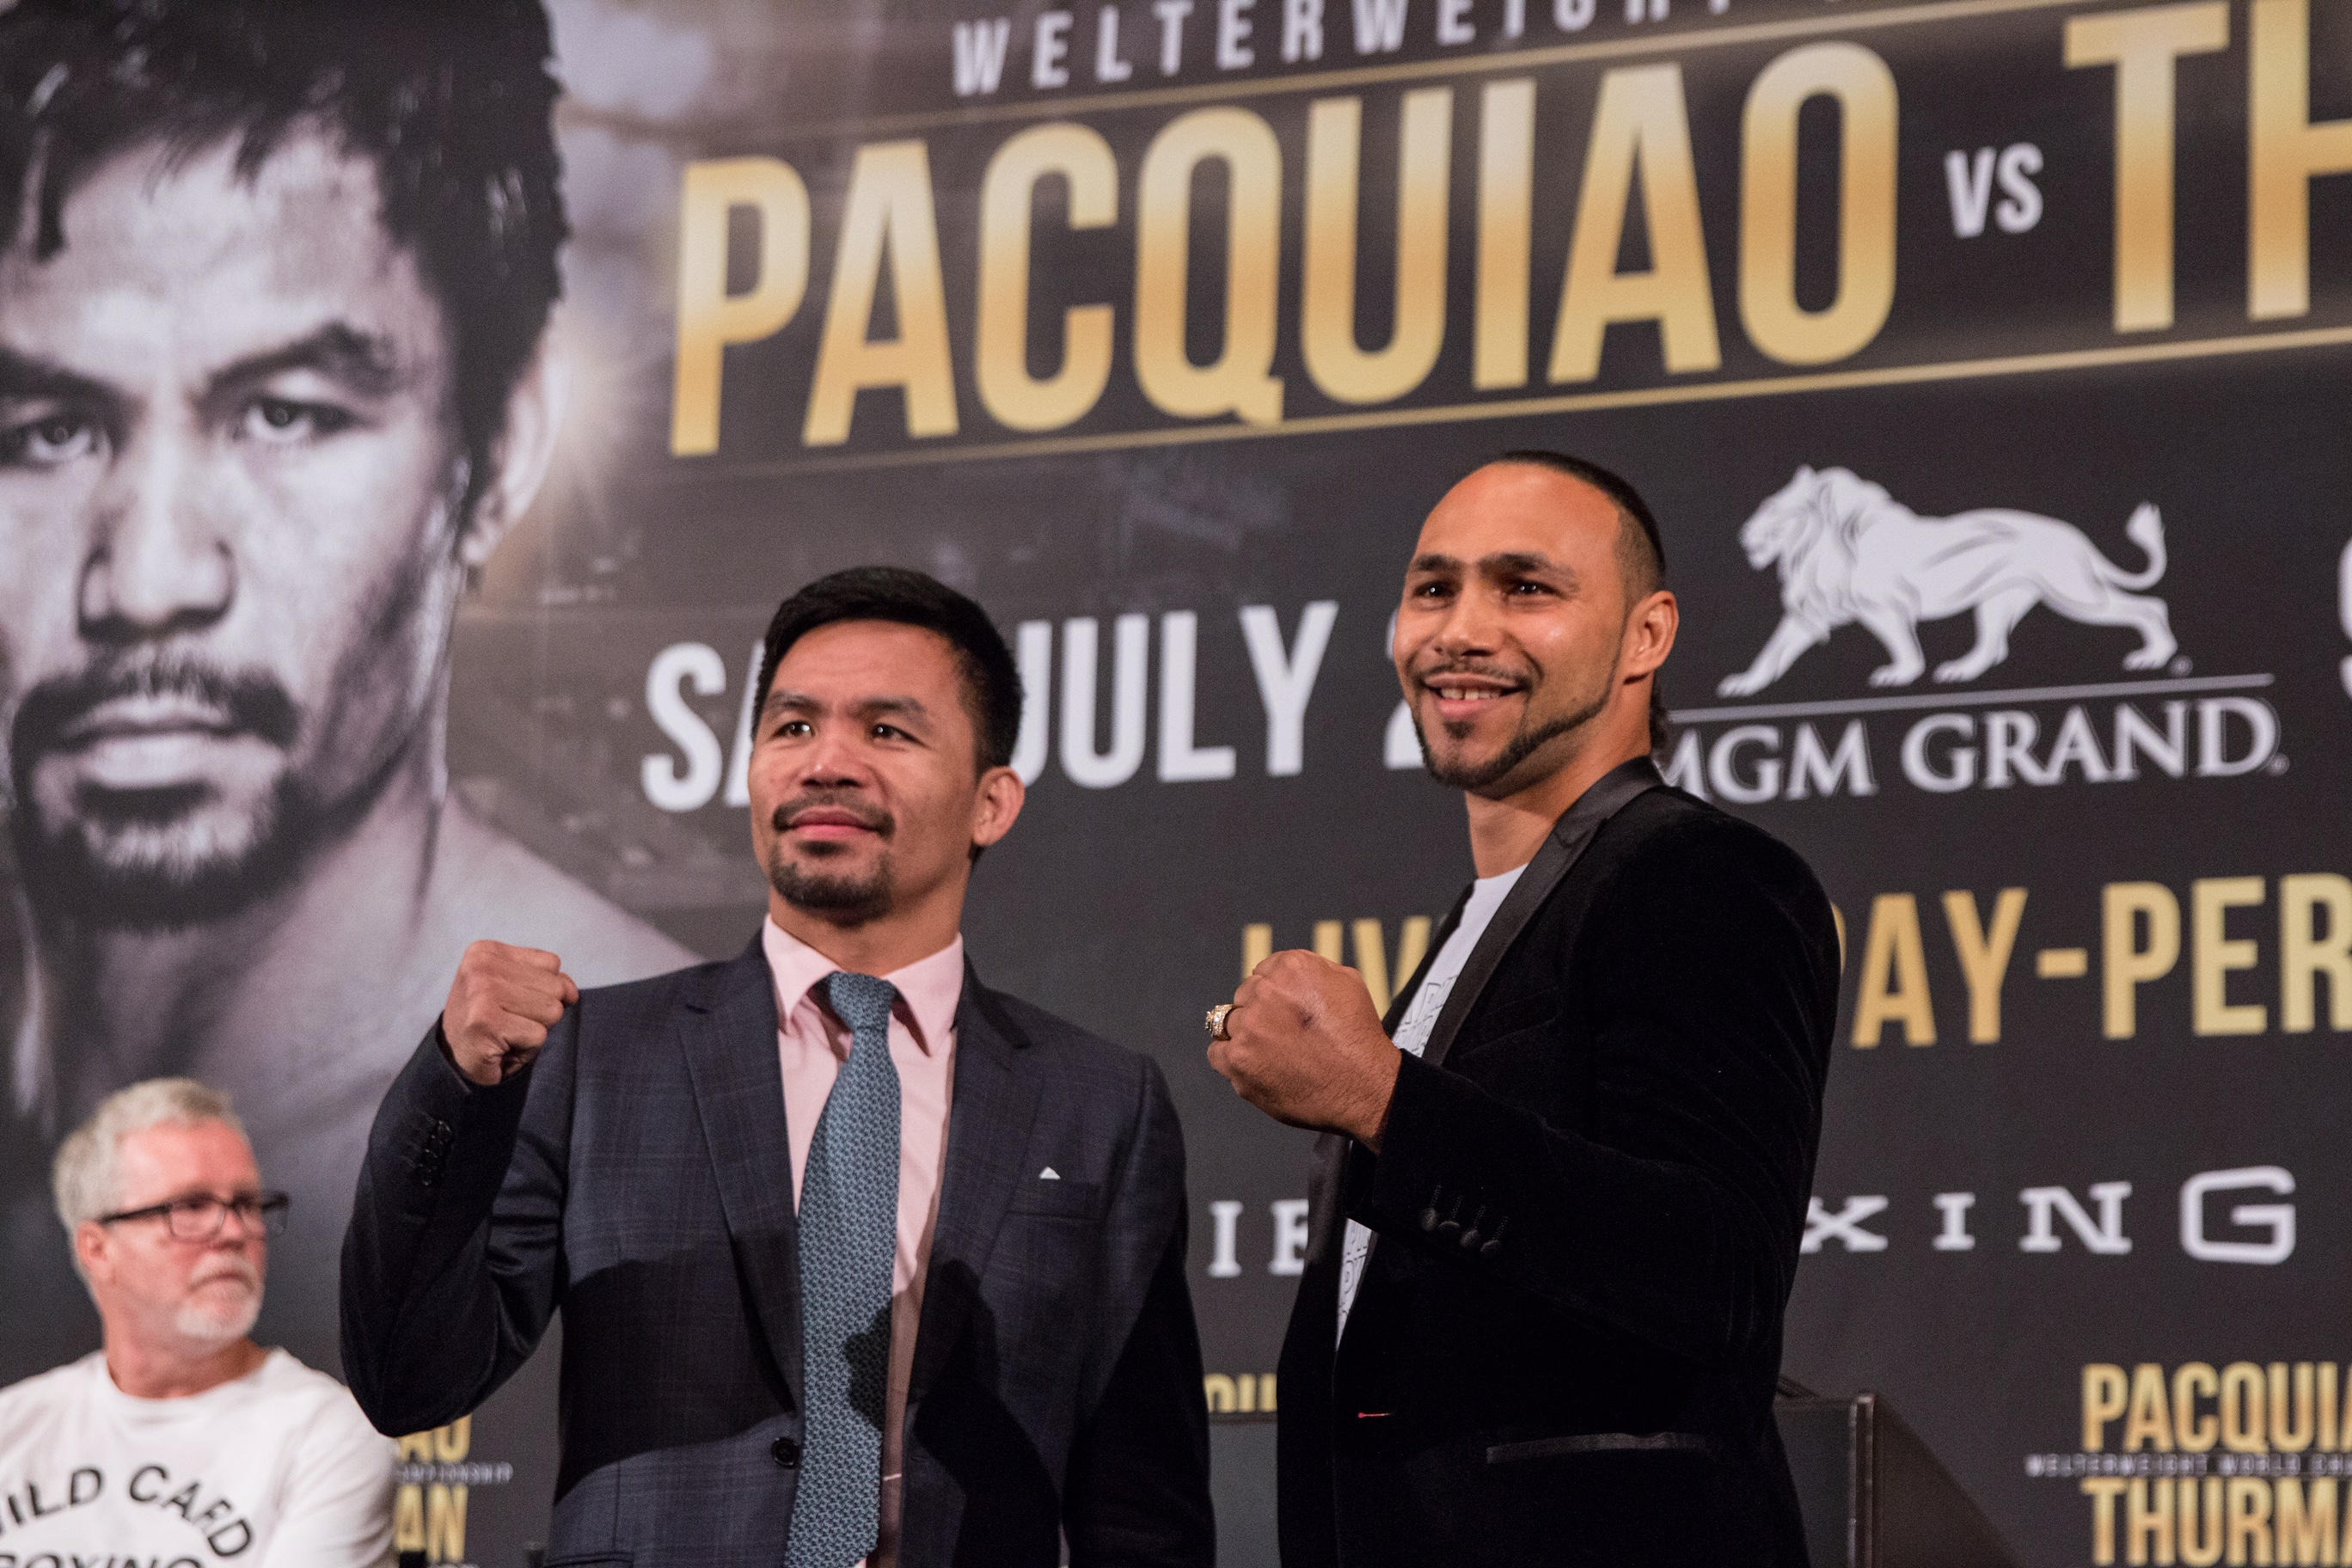 477EC3F2 A3AD 4B93 96AA A898F1E3D4E5 - Manny Pacquiao vs. Keith Thurman and Caleb Plant vs. Mike Lee Los Angeles Press Conference Quotes